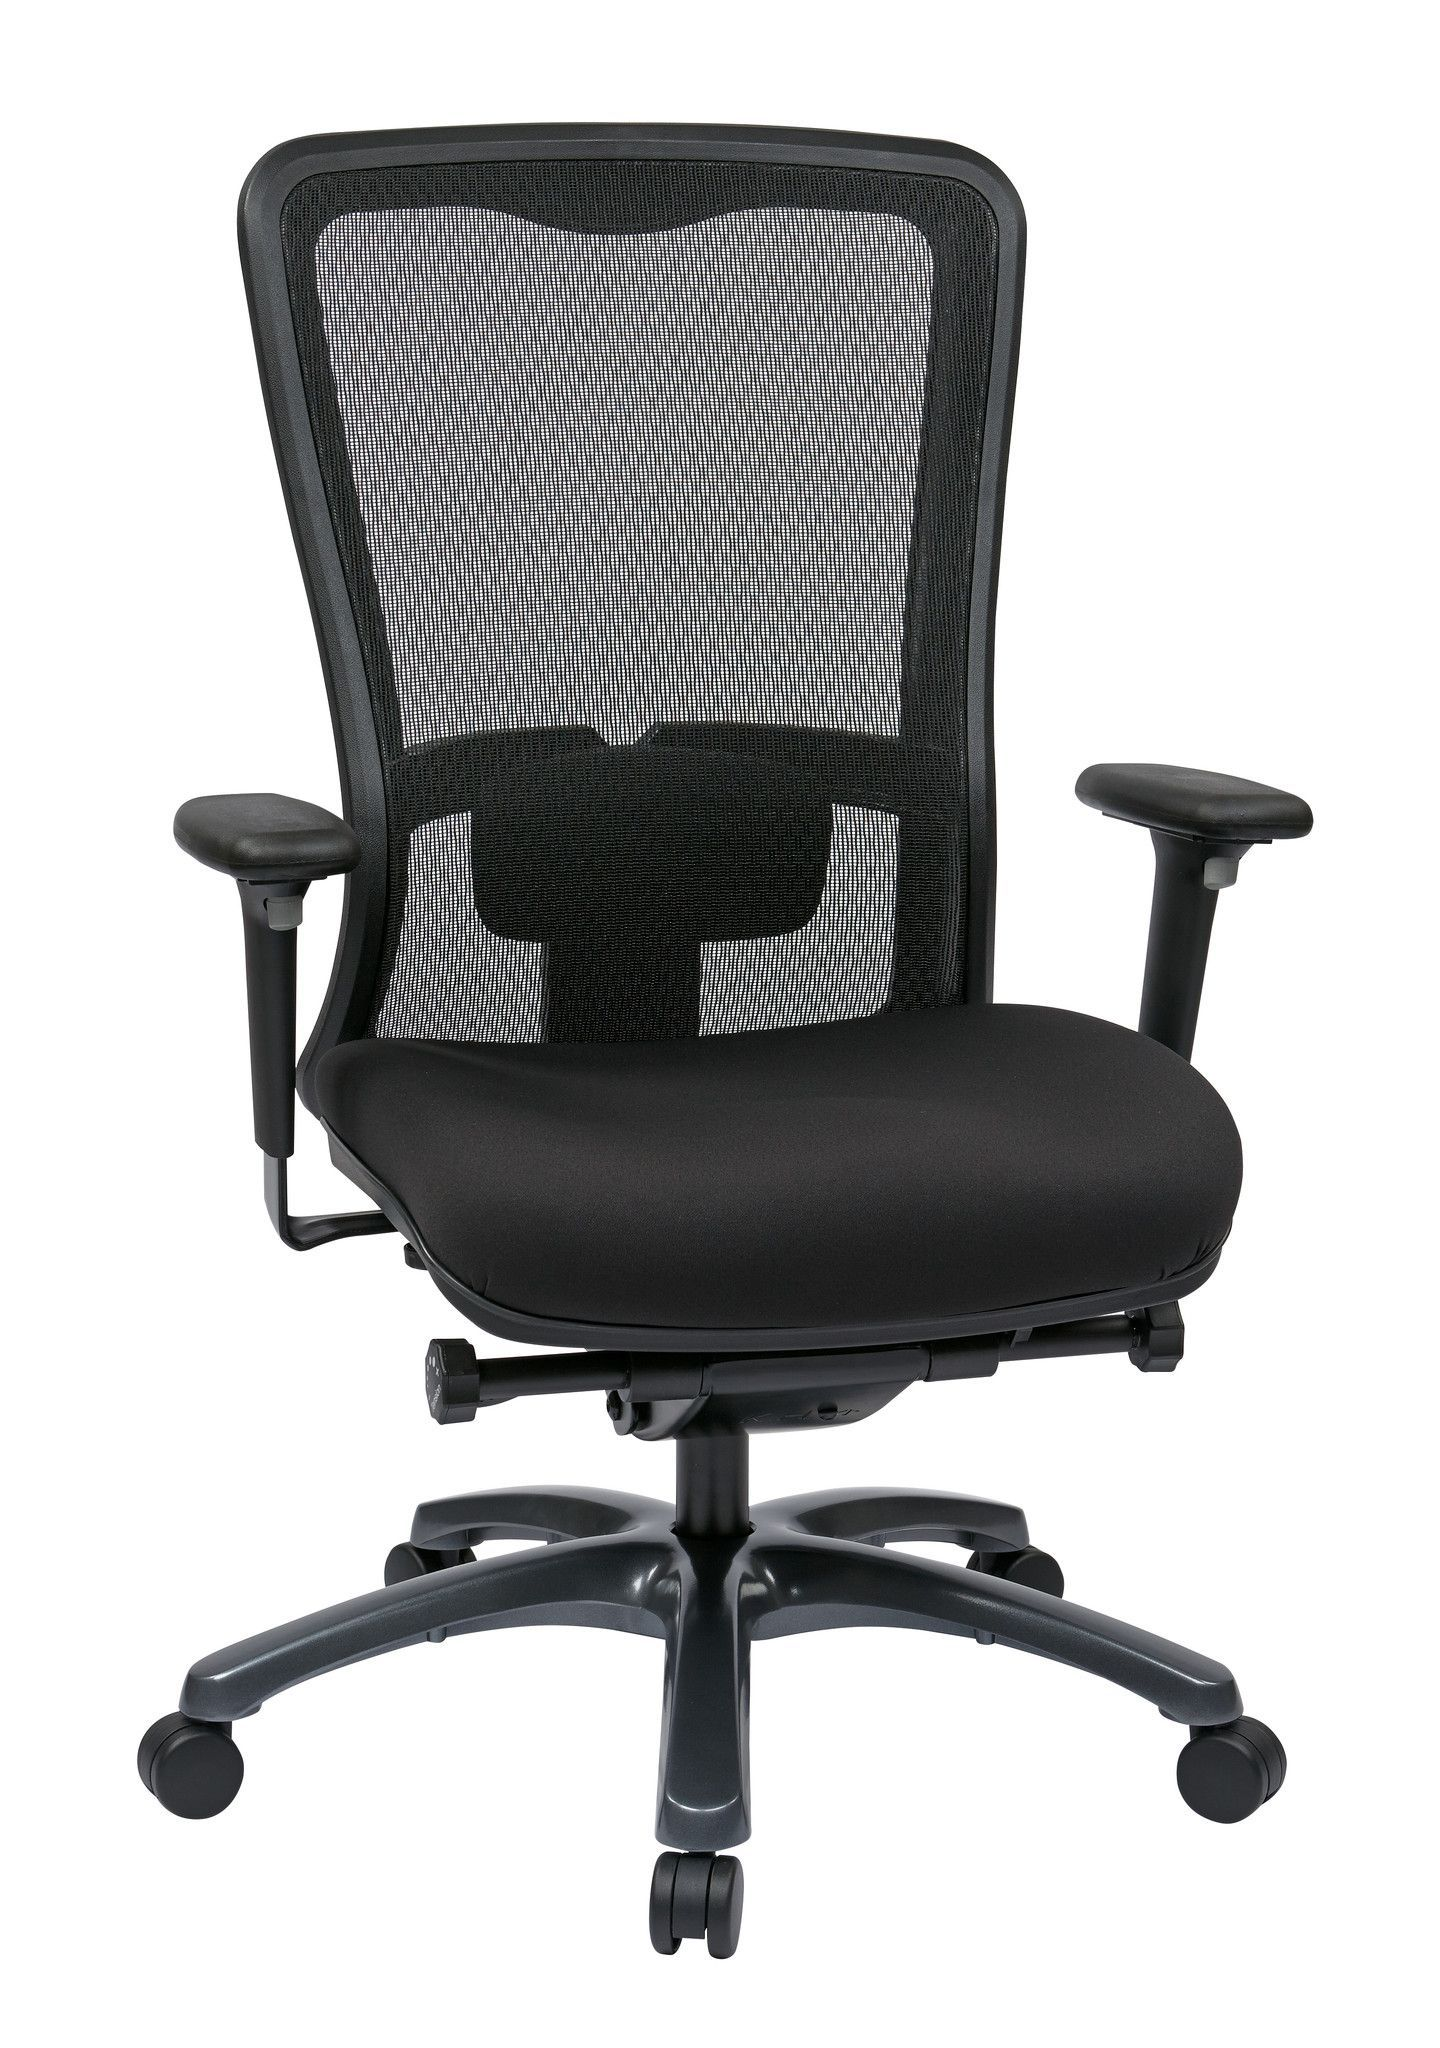 Pro Line II™ ProGrid High Back Chair at Harvey & Haley for